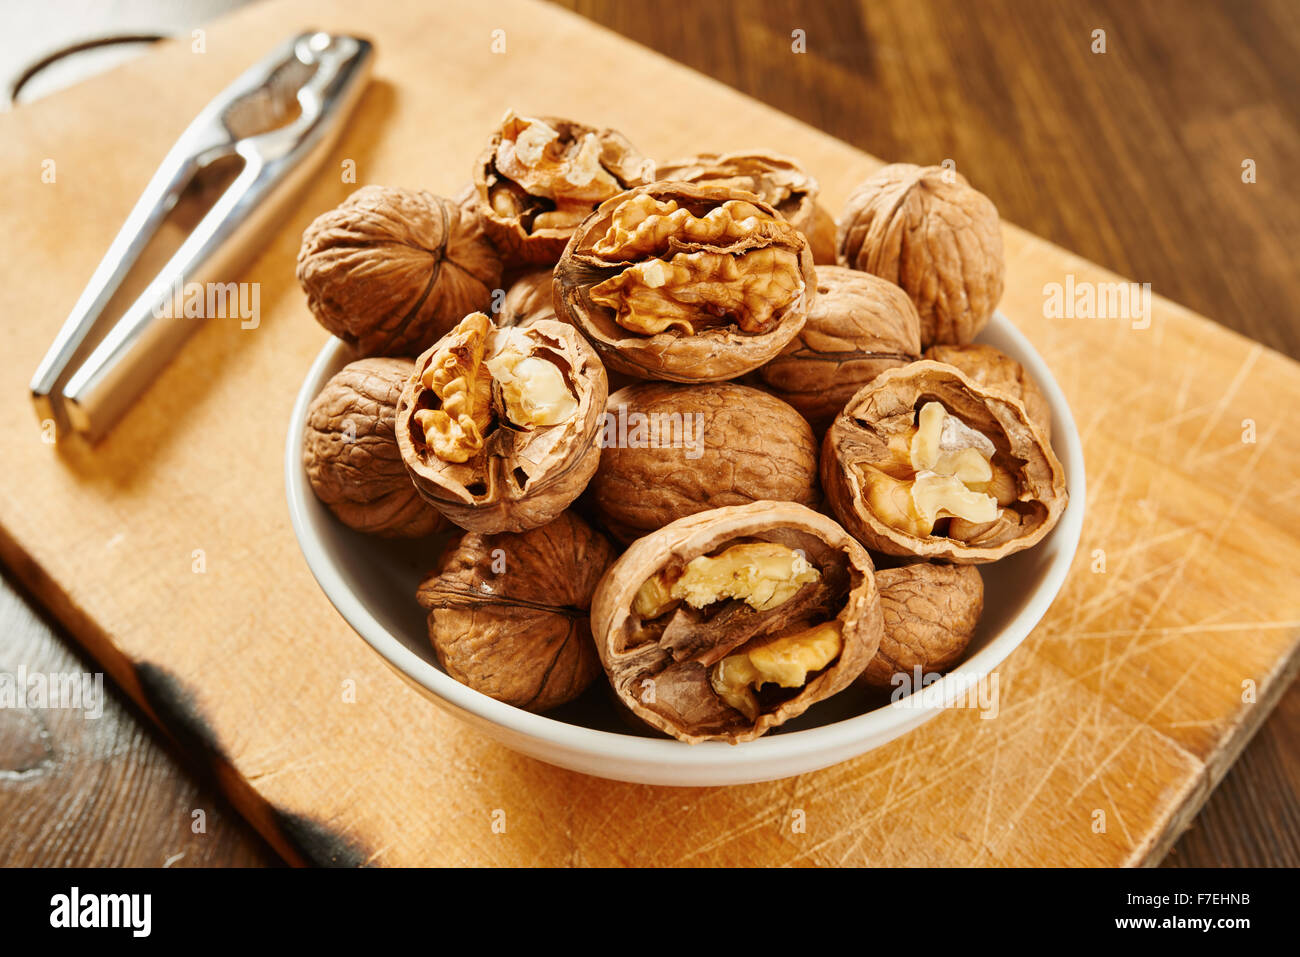 Walnuts on white bowl resting on a cutting board and wooden table - Stock Image